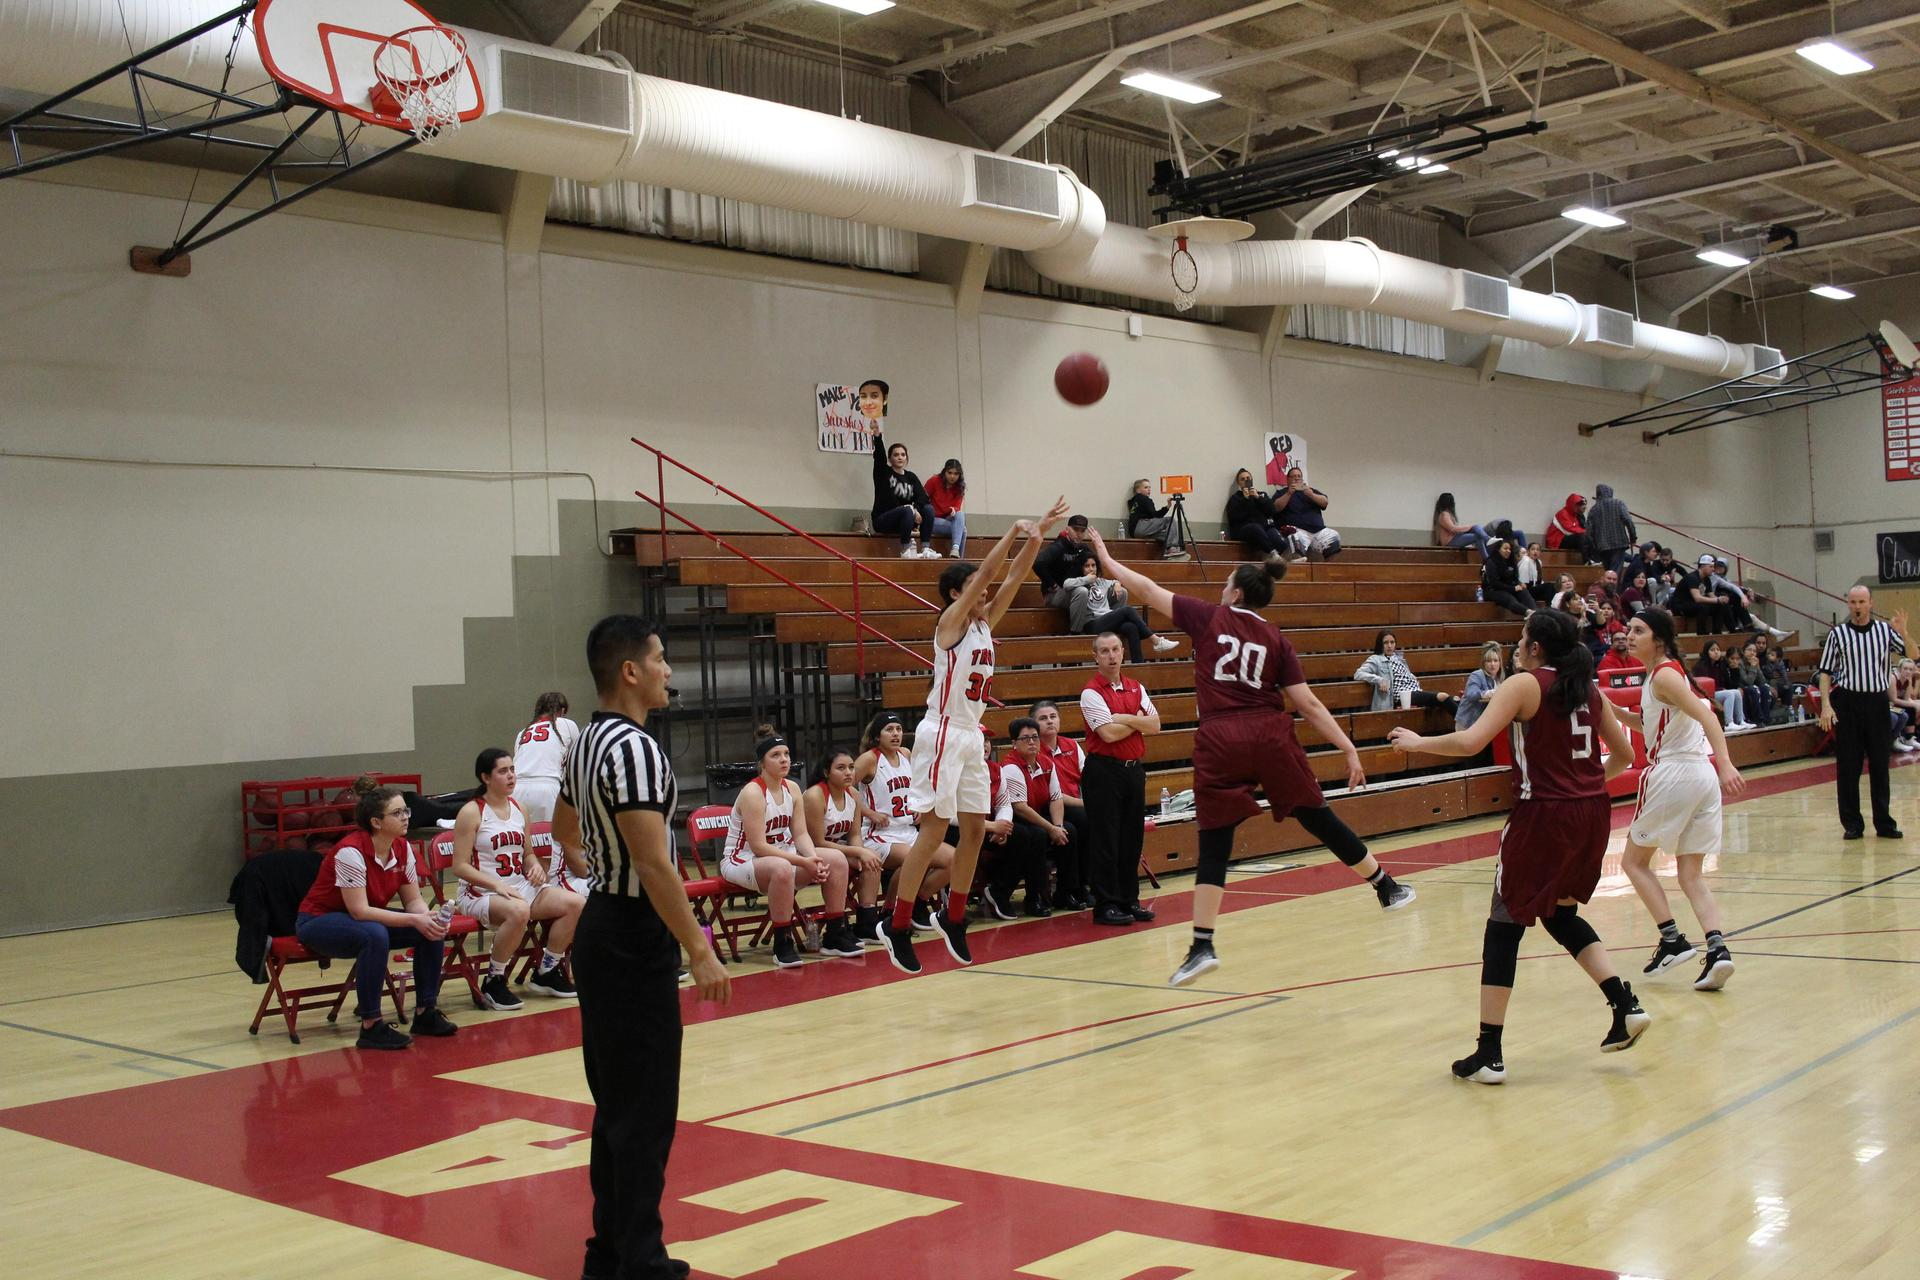 Varsity girls playing basketball against Granite Hills